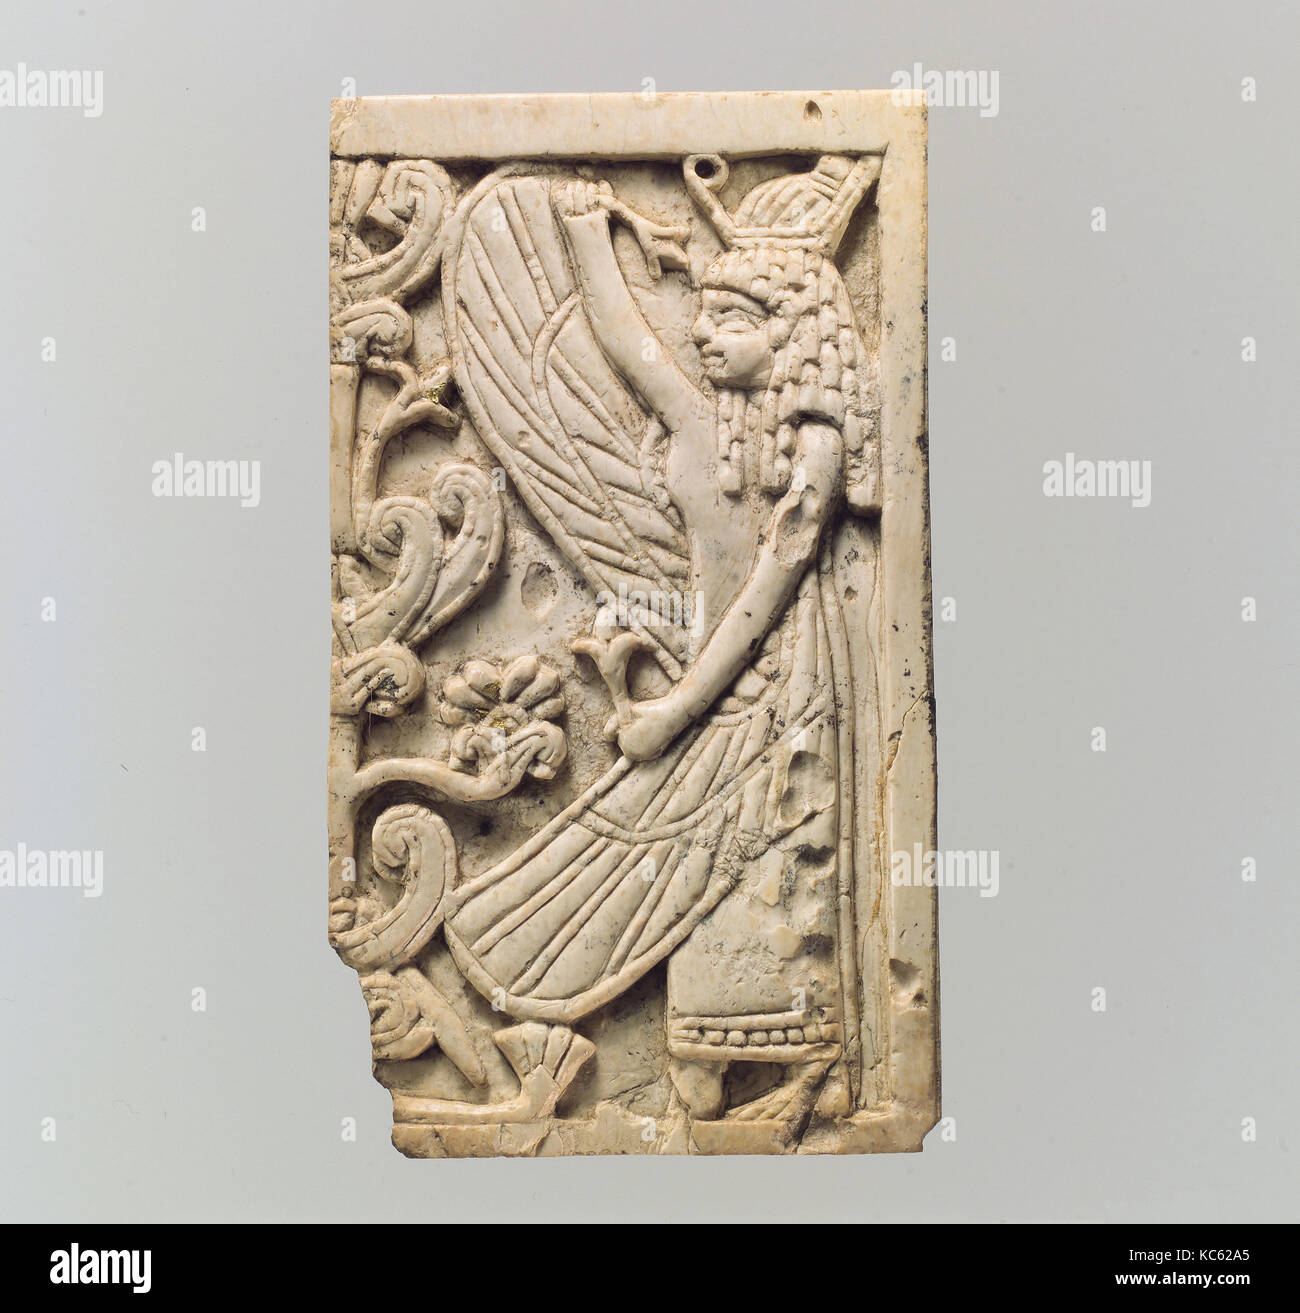 Furniture plaque carved in relief with a winged female figure and